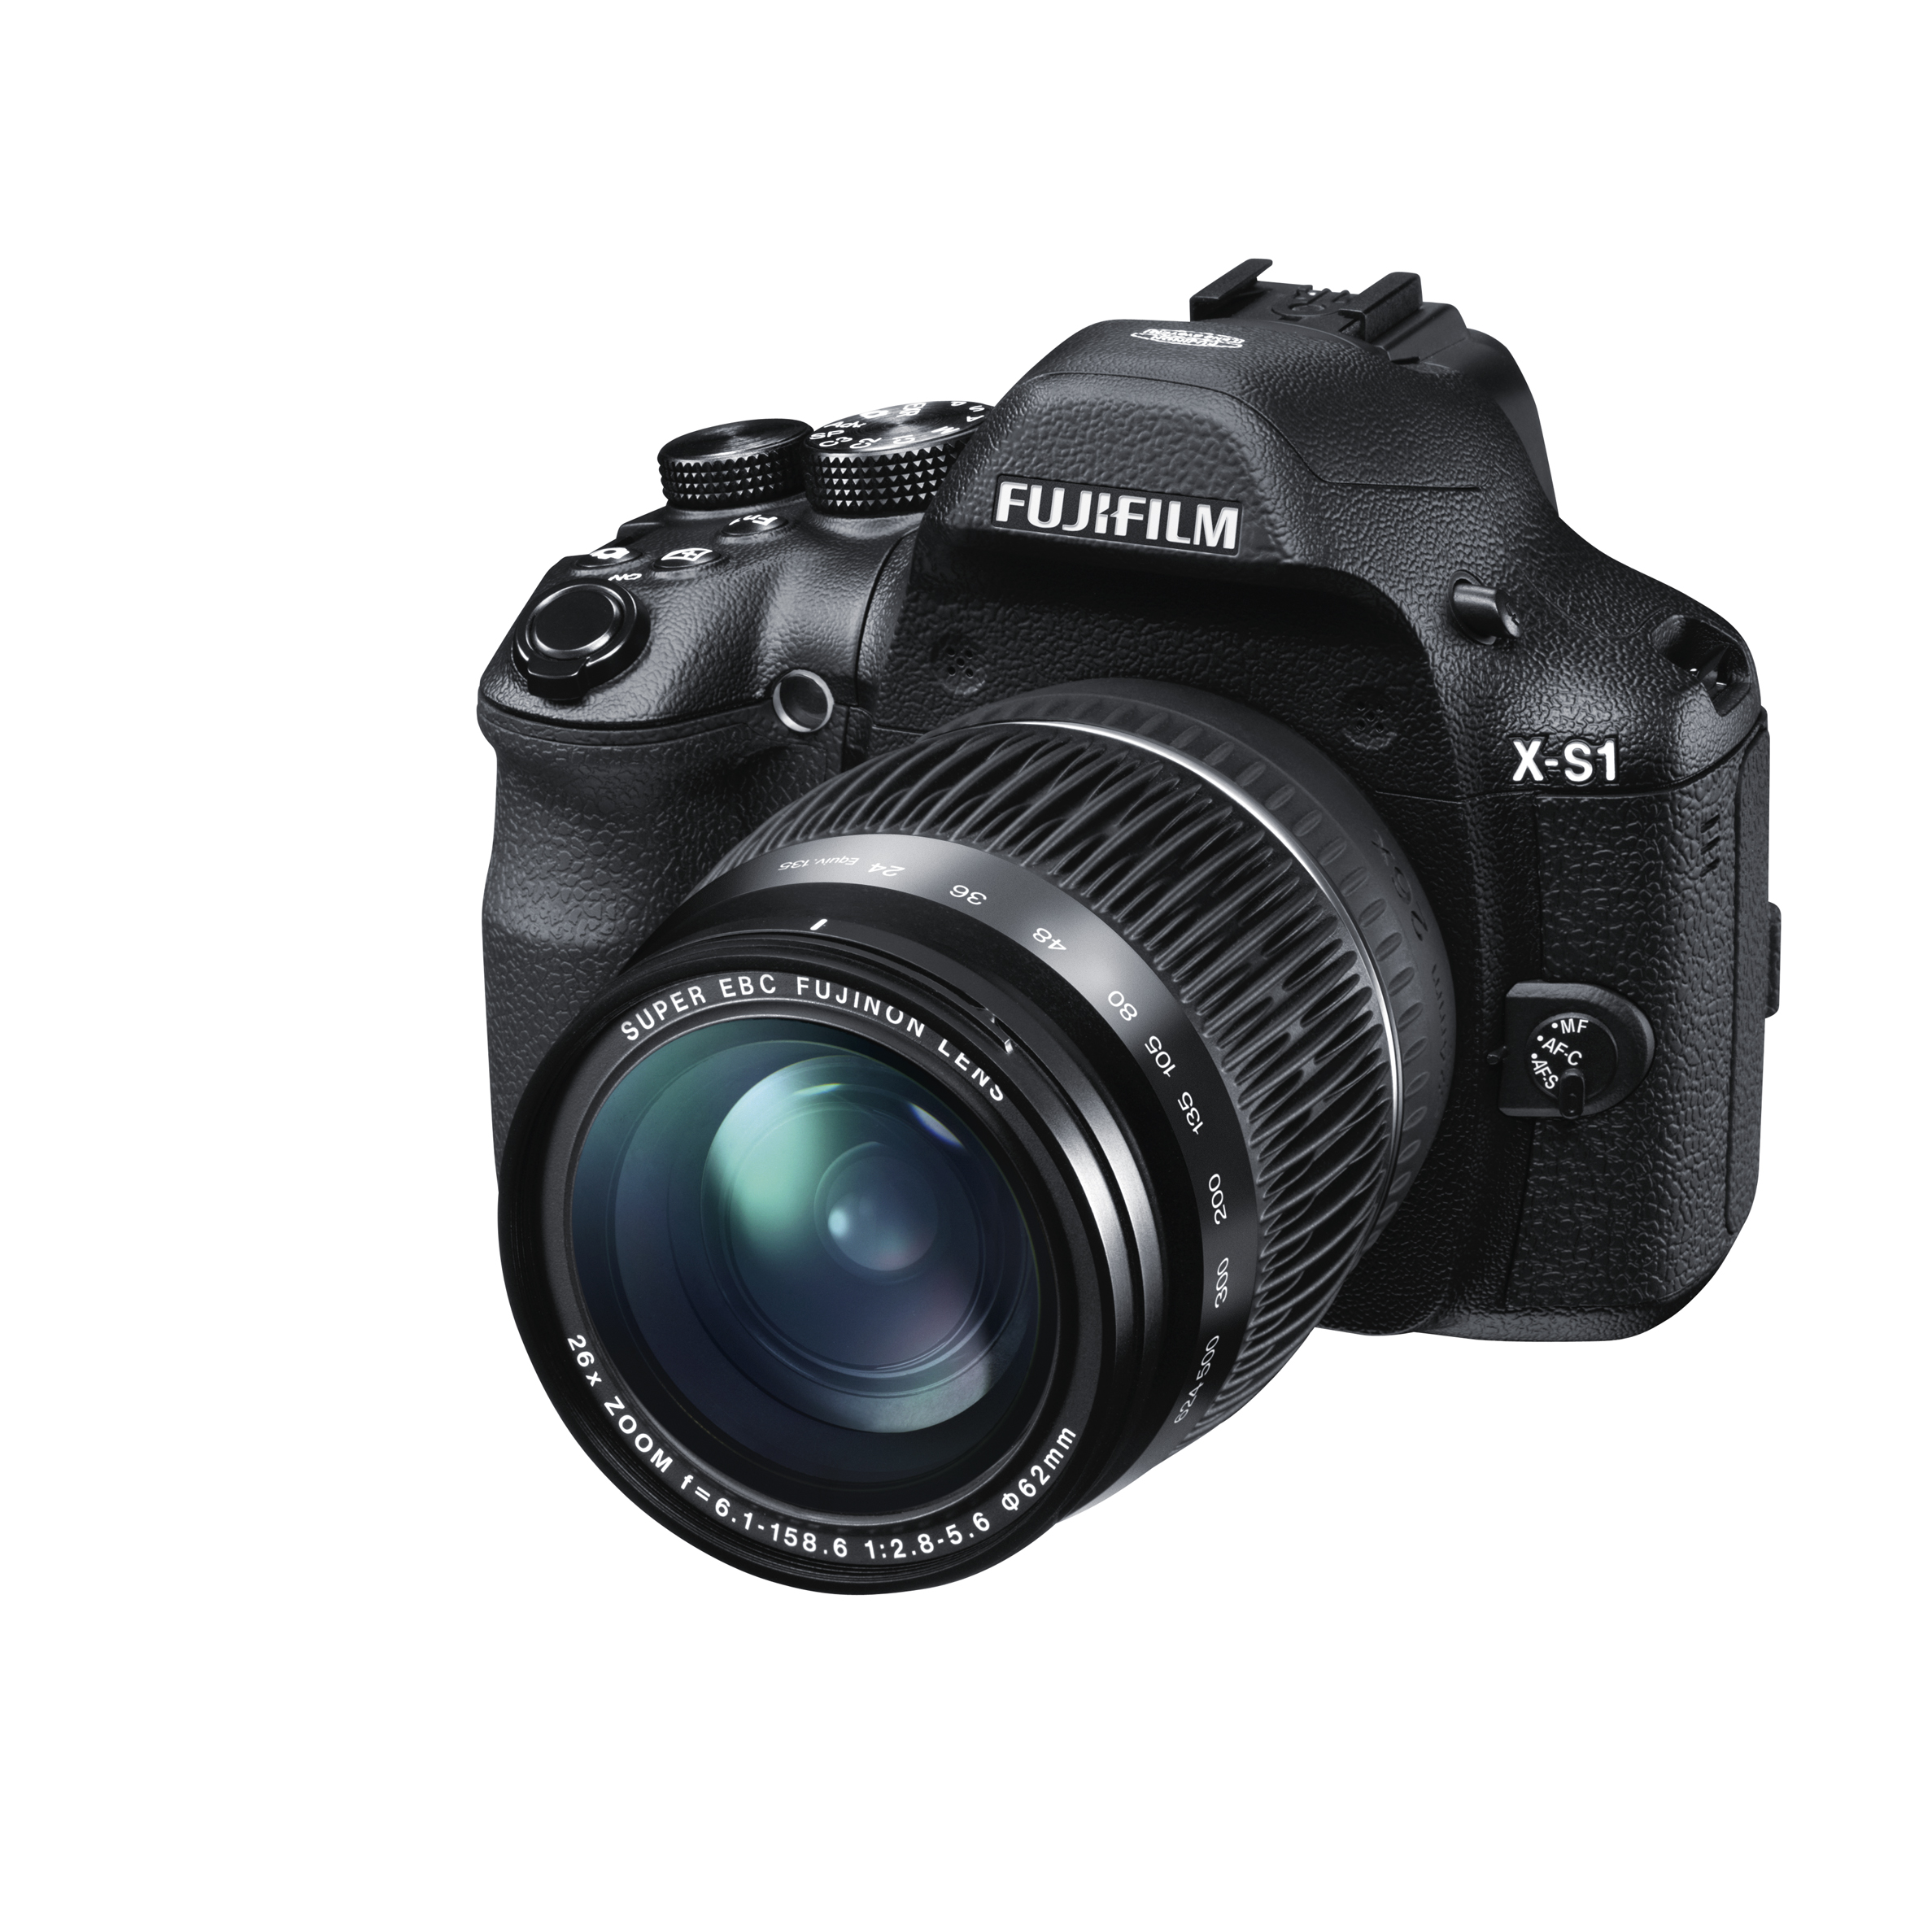 fujifilm developing modified sensor to fix x10 and x s1 white orbs rh dpreview com Fuji X30 fujifilm x10 user manual